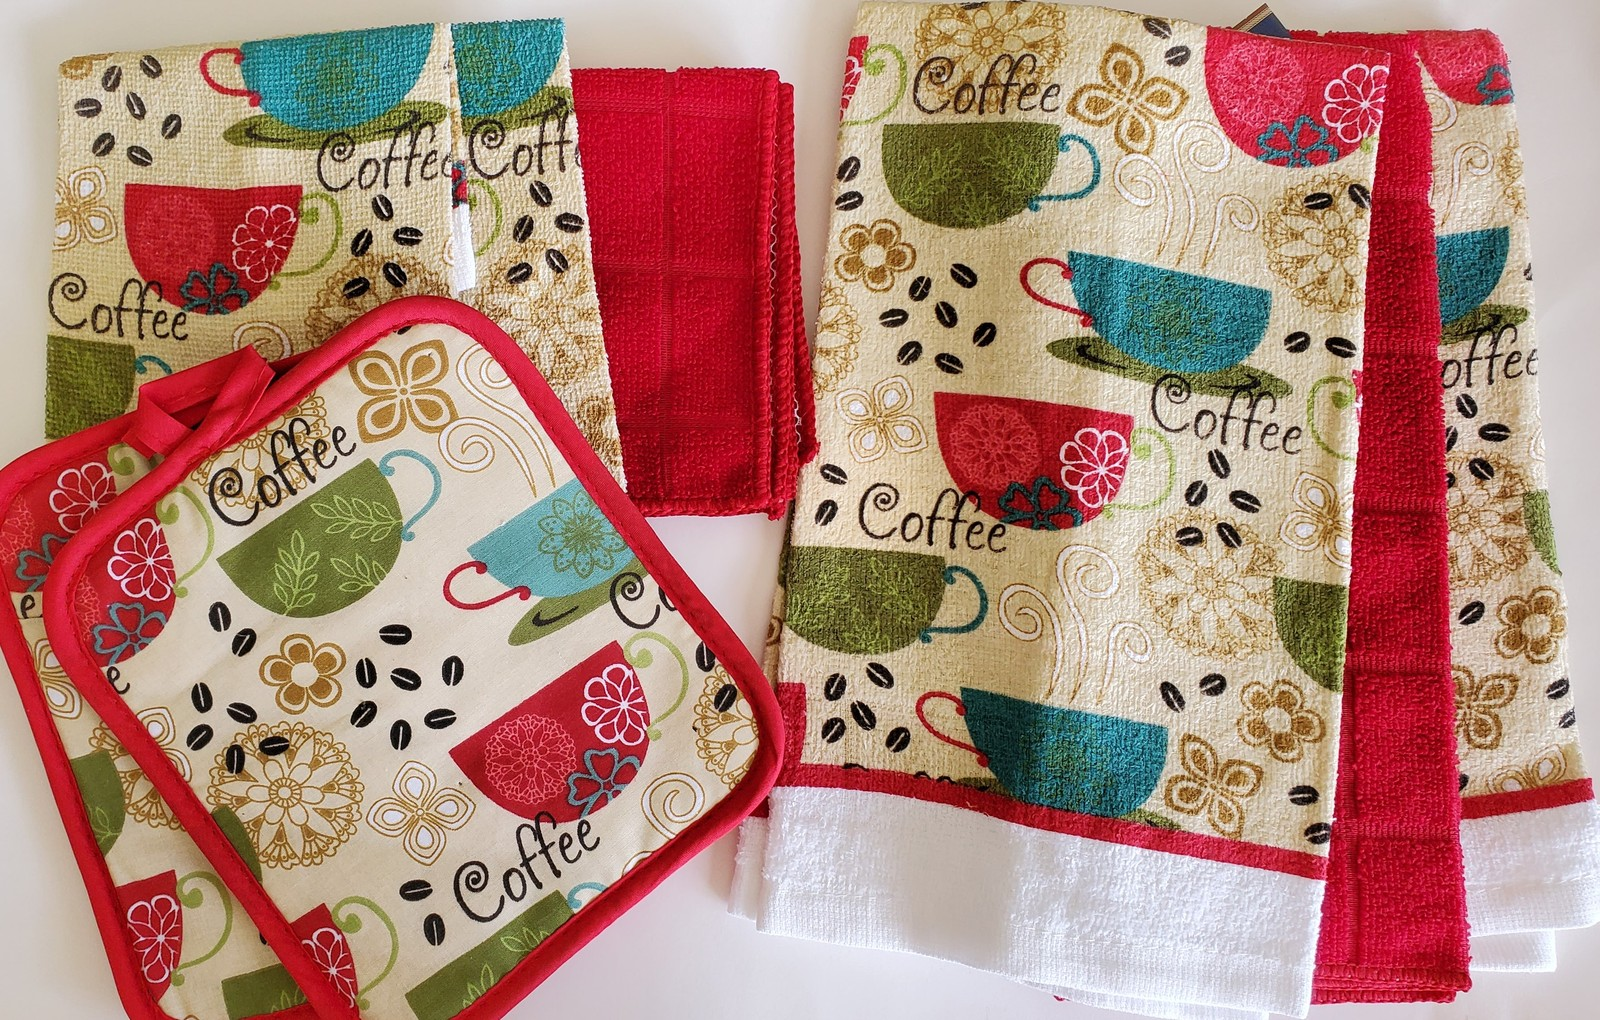 Red Coffee Kitchen Set 7pc Towels Potholders Dishcloths Colorful Cafe Cups - £12.35 GBP